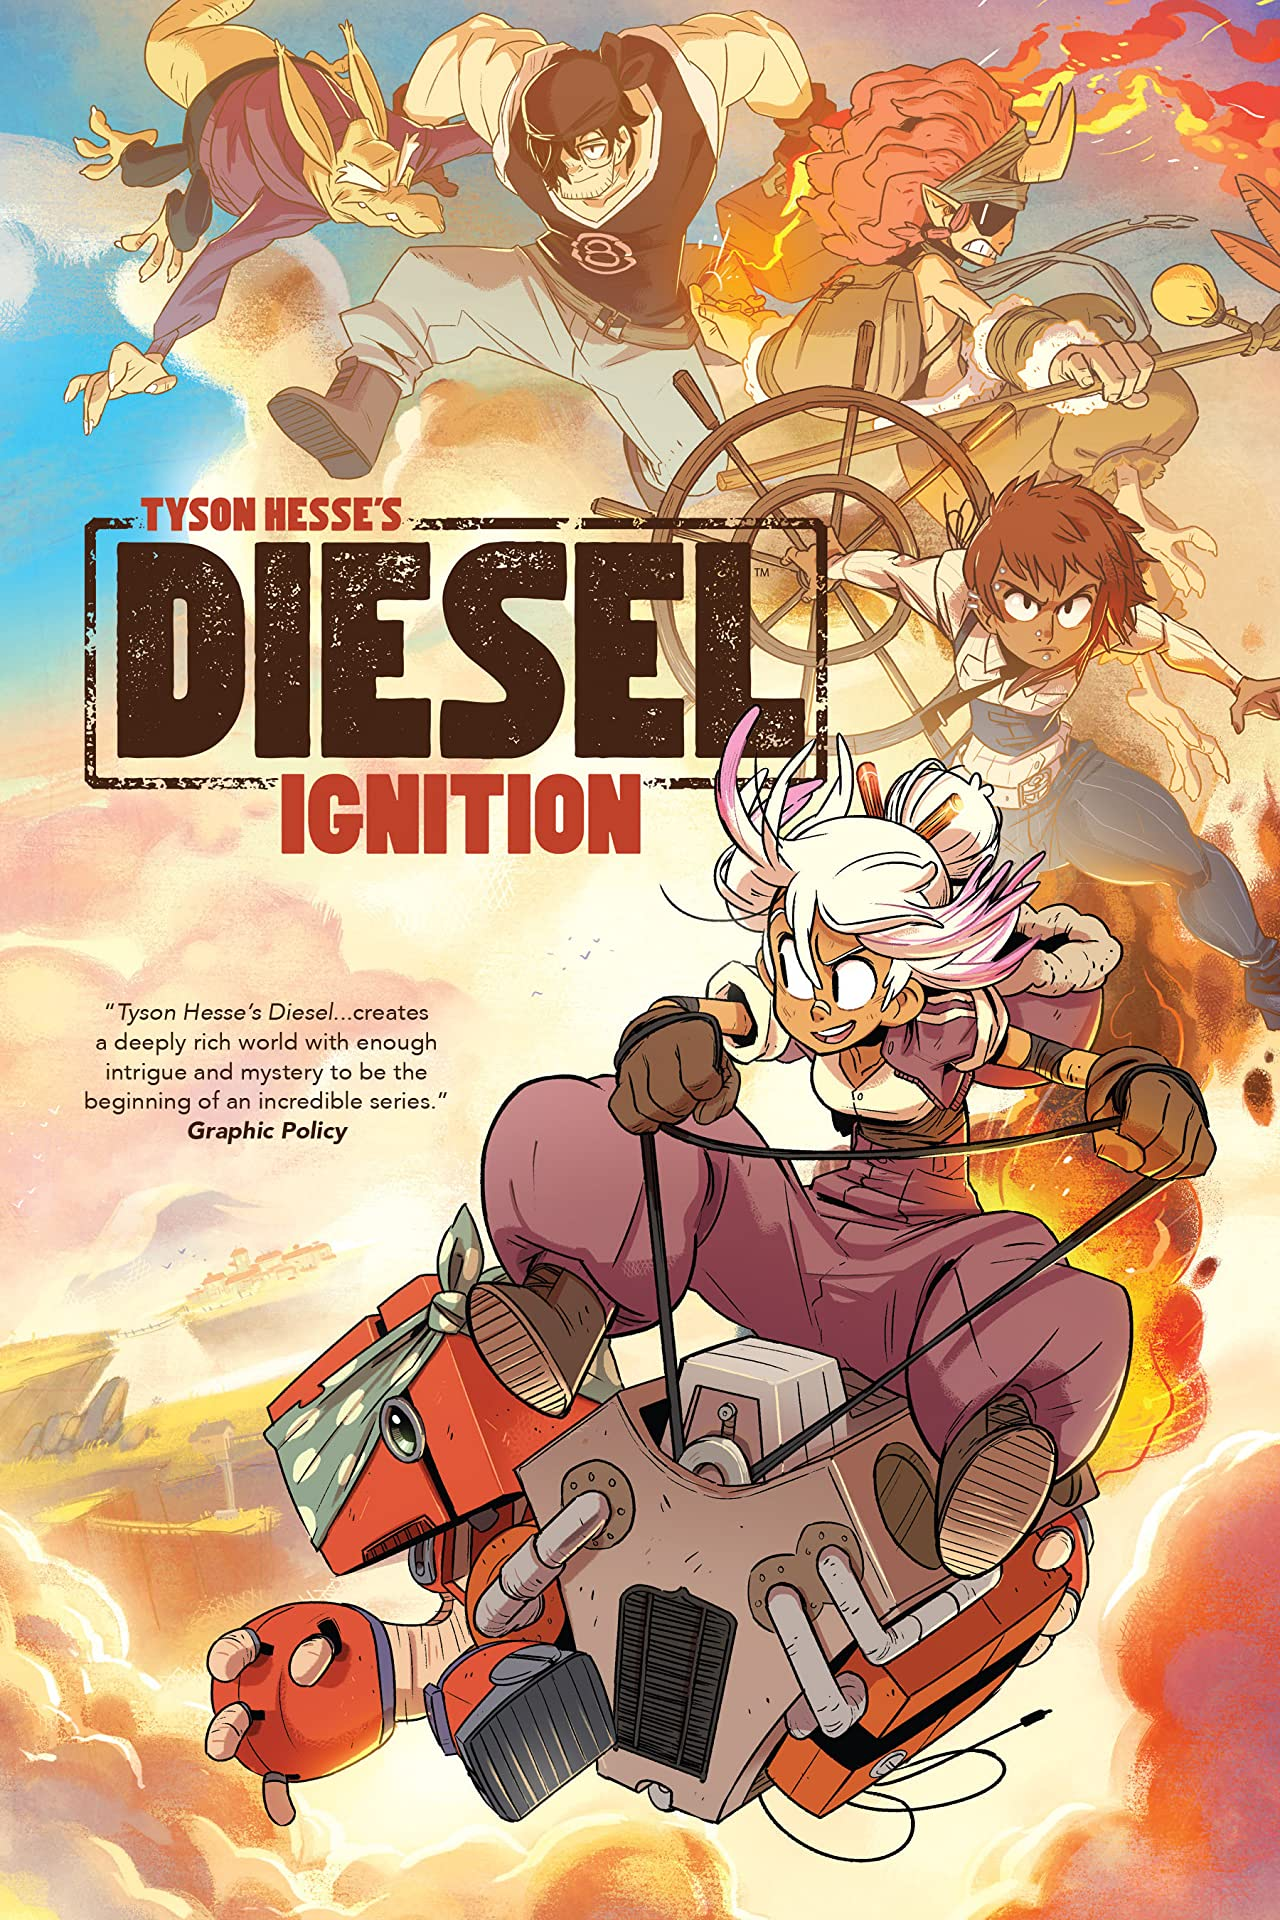 Tyson Hesse's Diesel: Ignition